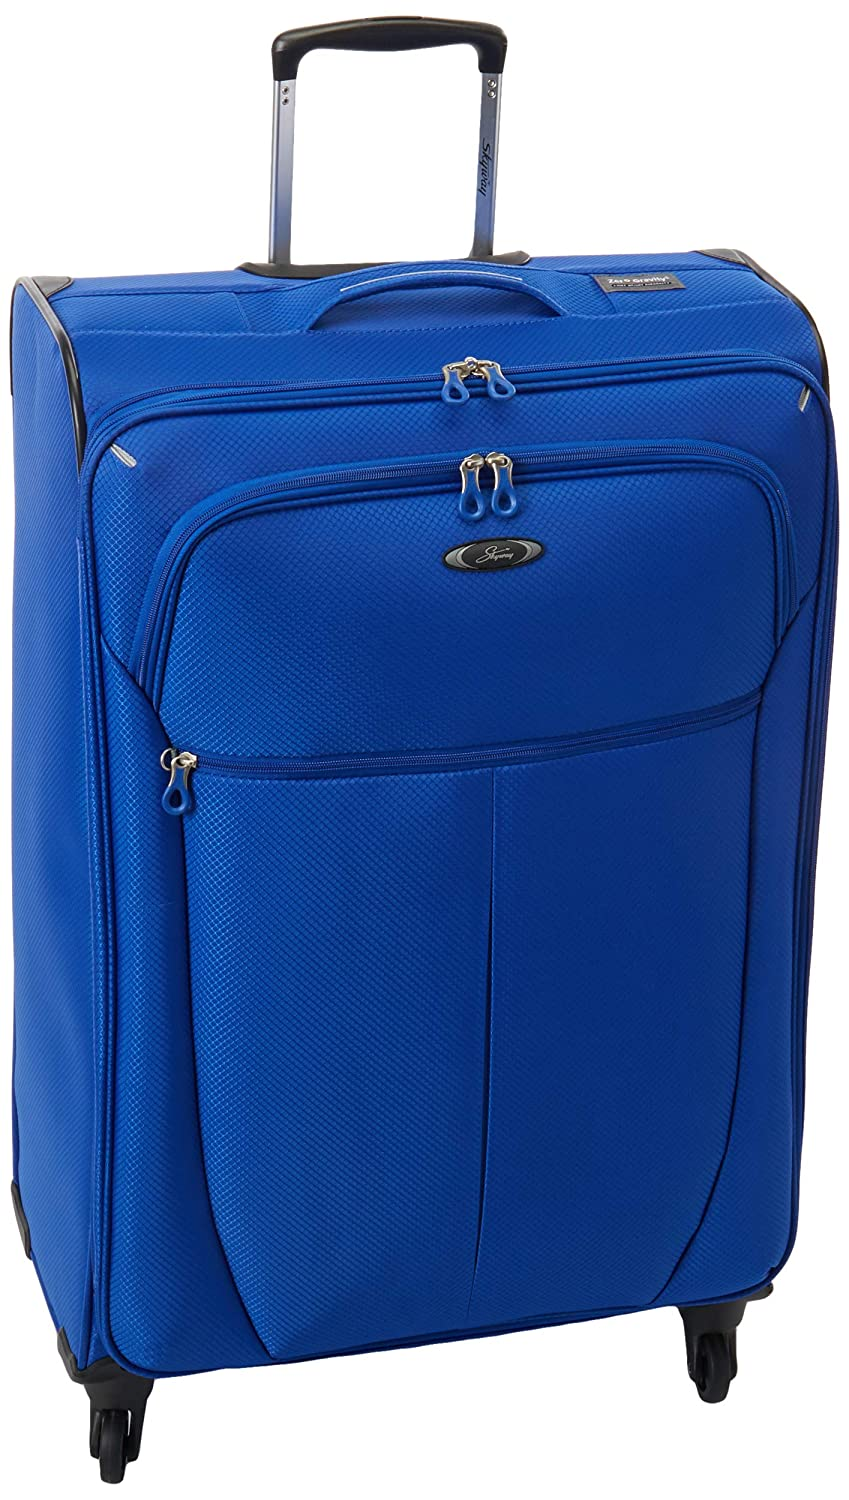 8eaf4429f Amazon.com | Skyway Luggage Mirage Superlight 28-Inch 4 Wheel Expandable  Upright, Maritime Blue, One Size | Suitcases